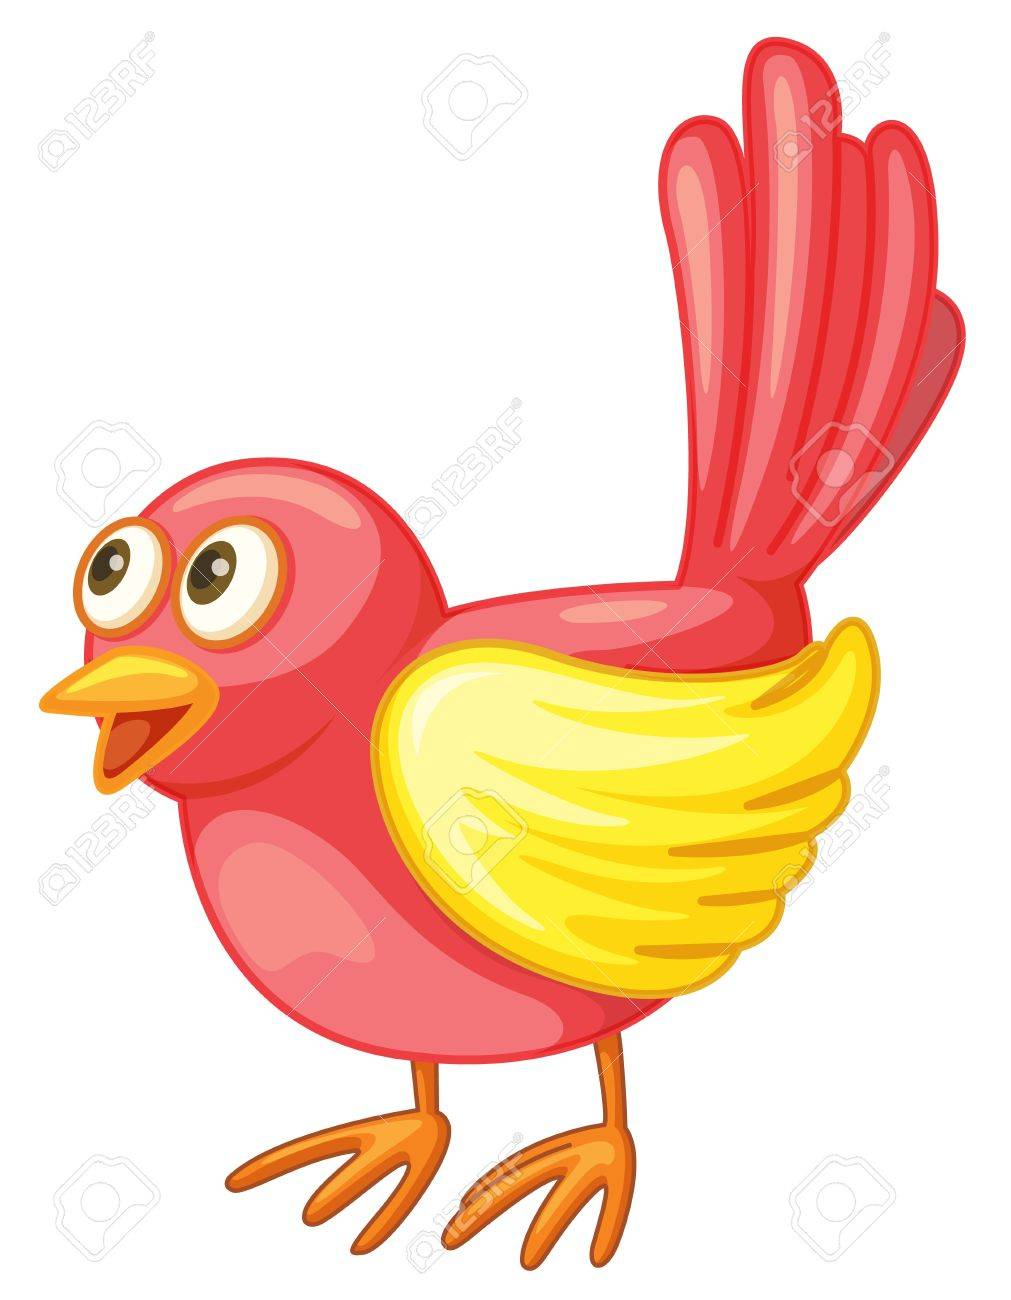 Illustration of a small red bird Stock Vector - 13800487